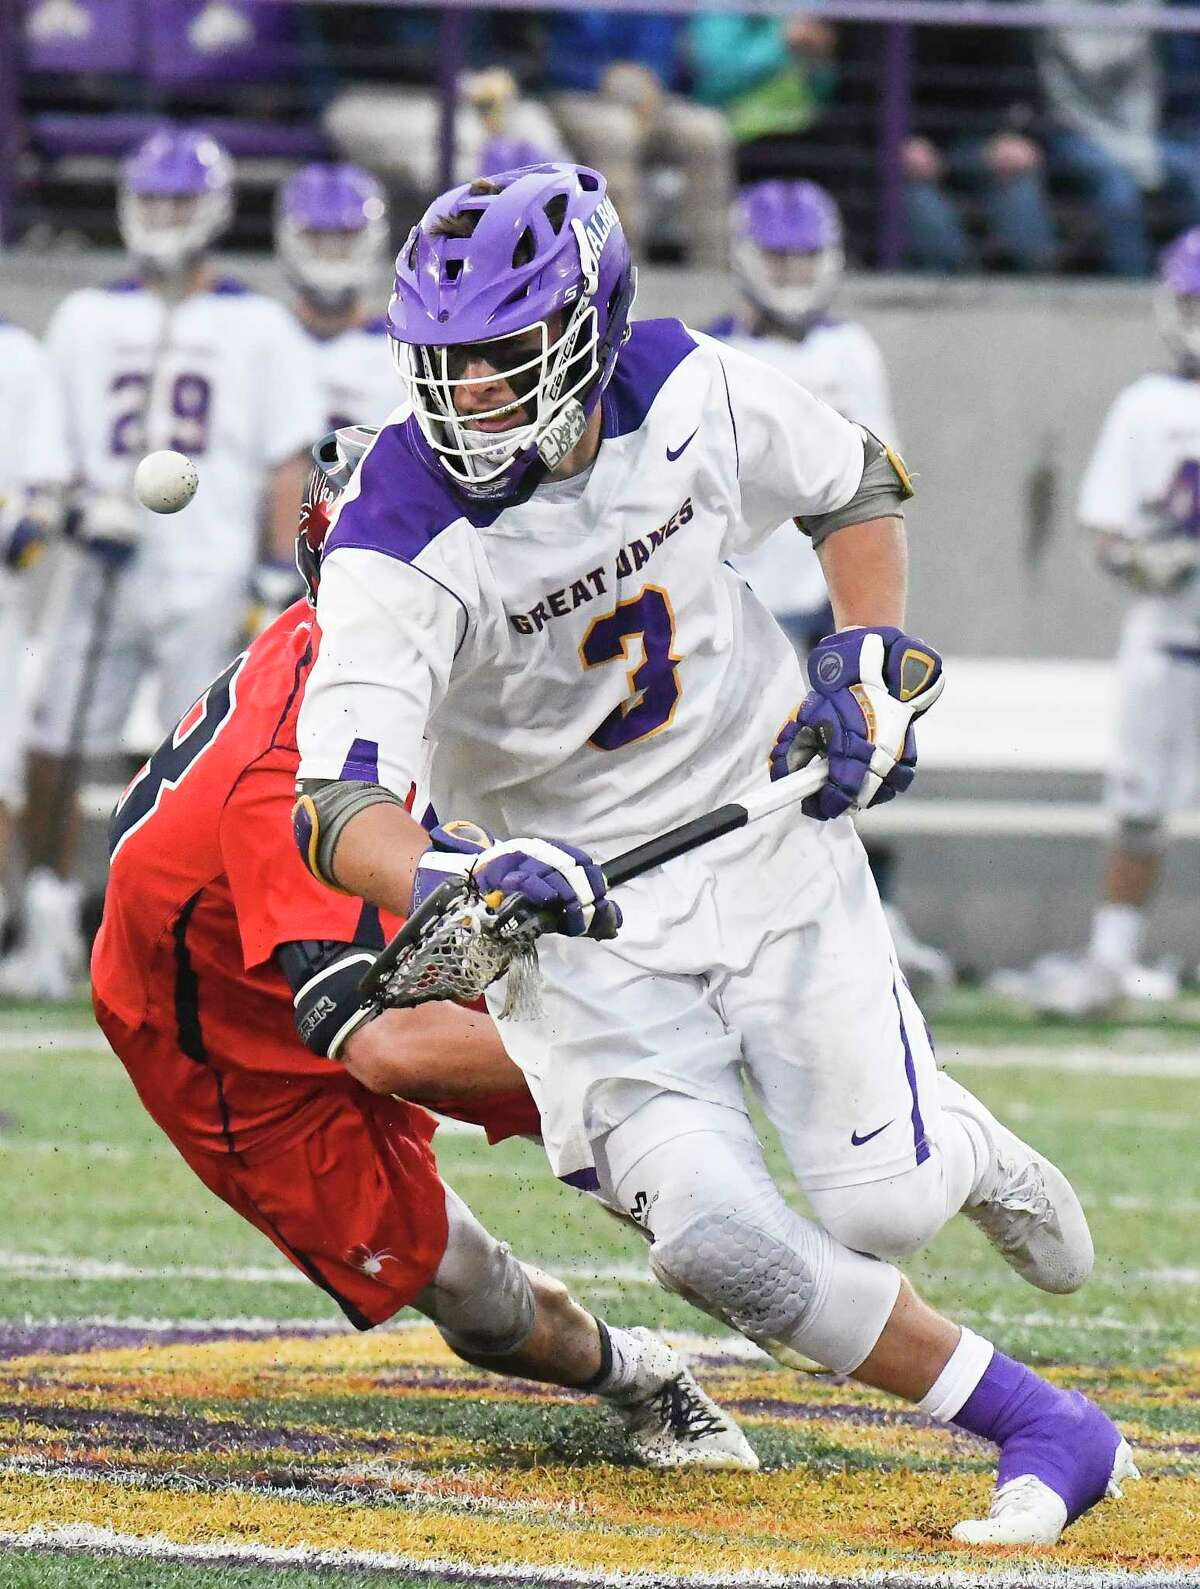 UAlbany's TD Ierlan (3) wins a face-off against RichmondOs Nick D'amaro (38) during a NCAA Tournament first-round Division 1 lacrosse game Saturday, May 12, 2018, in Albany, N.Y. (Hans Pennink / Special to the Times Union)